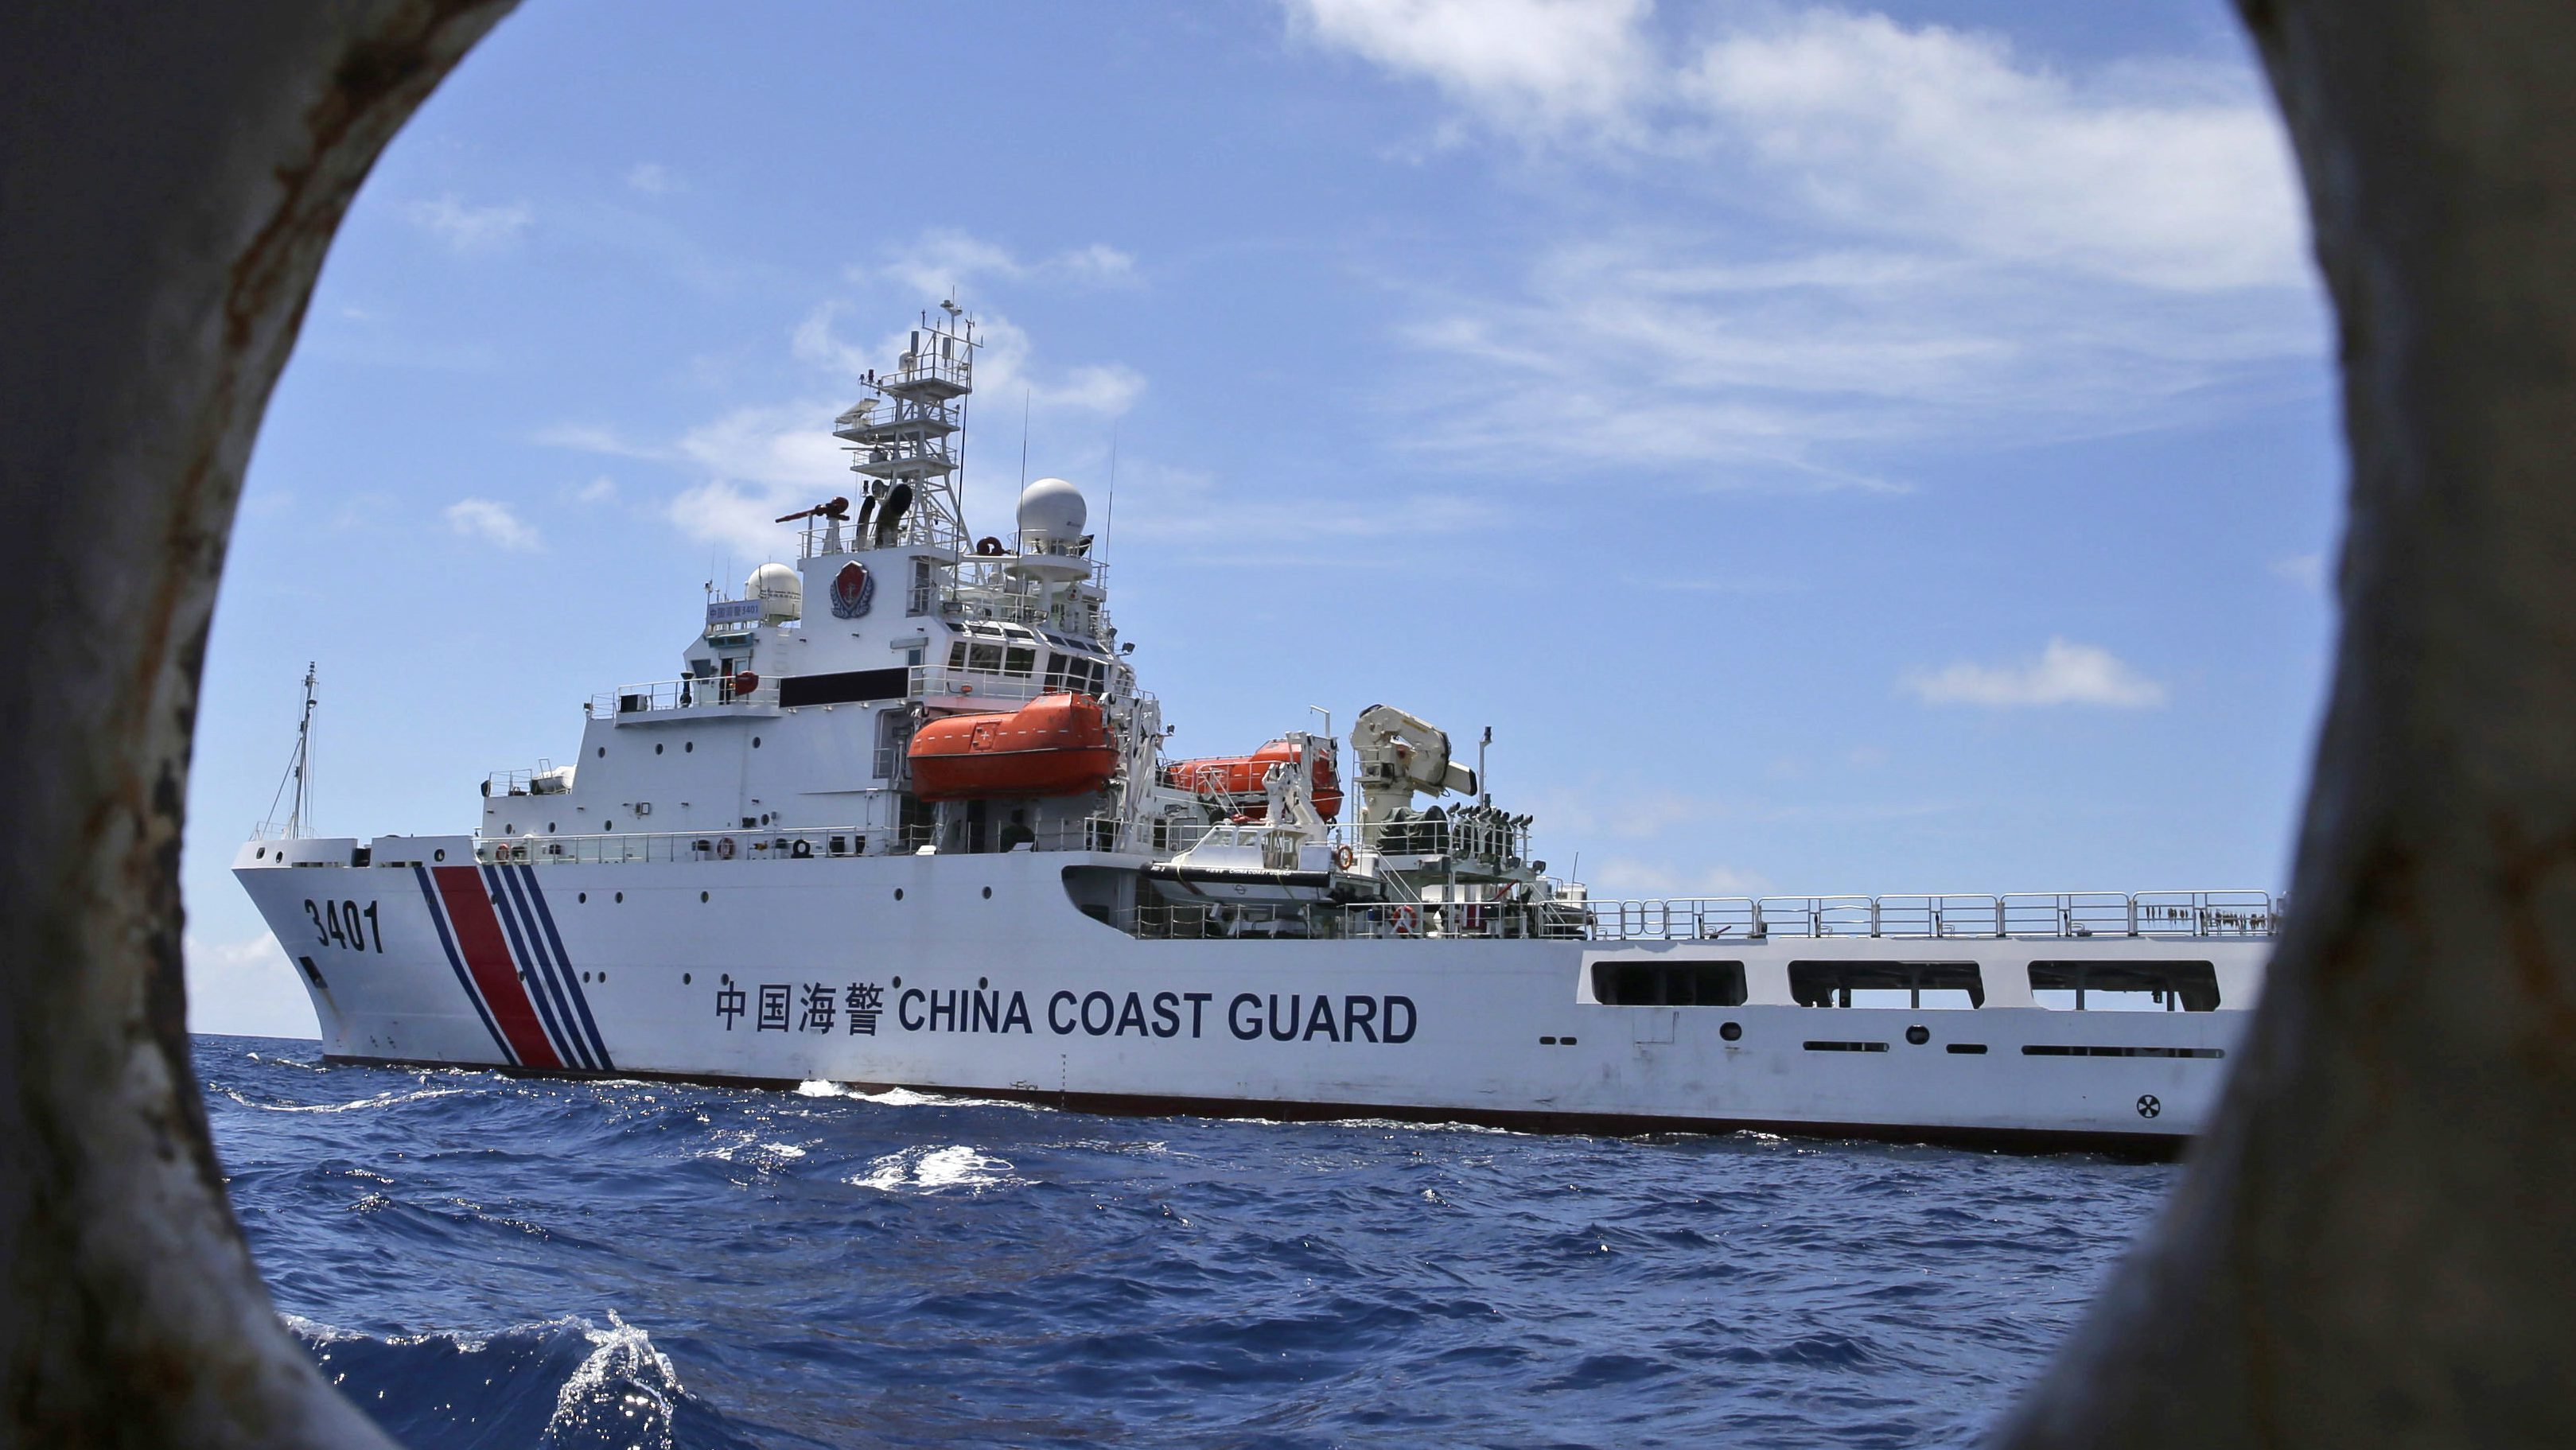 In this March 29, 2014 file photo, a Chinese Coast Guard ship attempts to block a Philippine government vessel as the latter tries to enter Second Thomas Shoal in the South China Sea to relieve Philippine troops and resupply provisions. While the global economy will dominate at the summit of the Group of 20 industrialized and emerging-market nations, politics and security issues form the backdrop to the gathering of world leaders in the eastern Chinese city of Hangzhou.